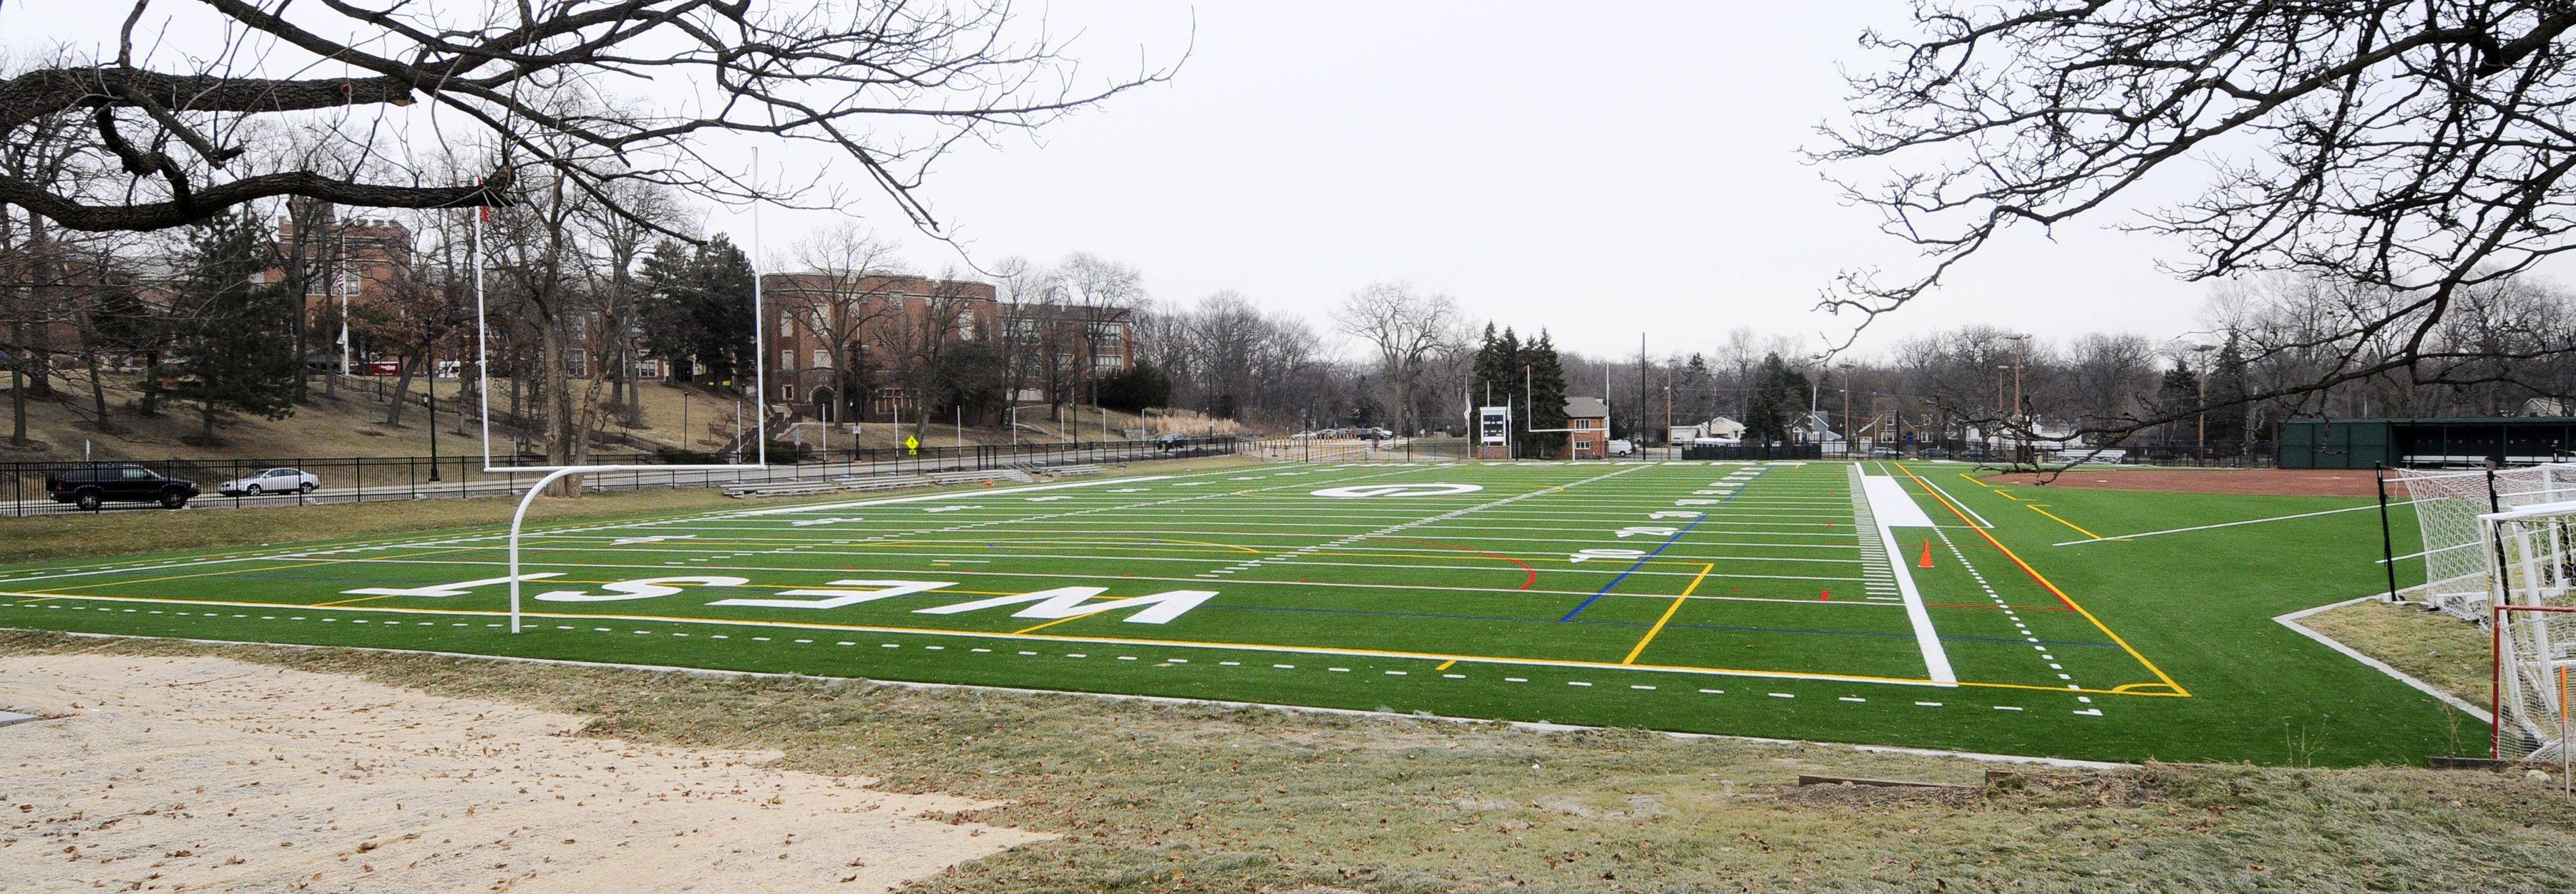 The Glenbard High School District 87 board approved a proposal to install lights at Memorial Field, across from Glenbard West High School in Glen Ellyn. The village plan commission will now consider a variance application.